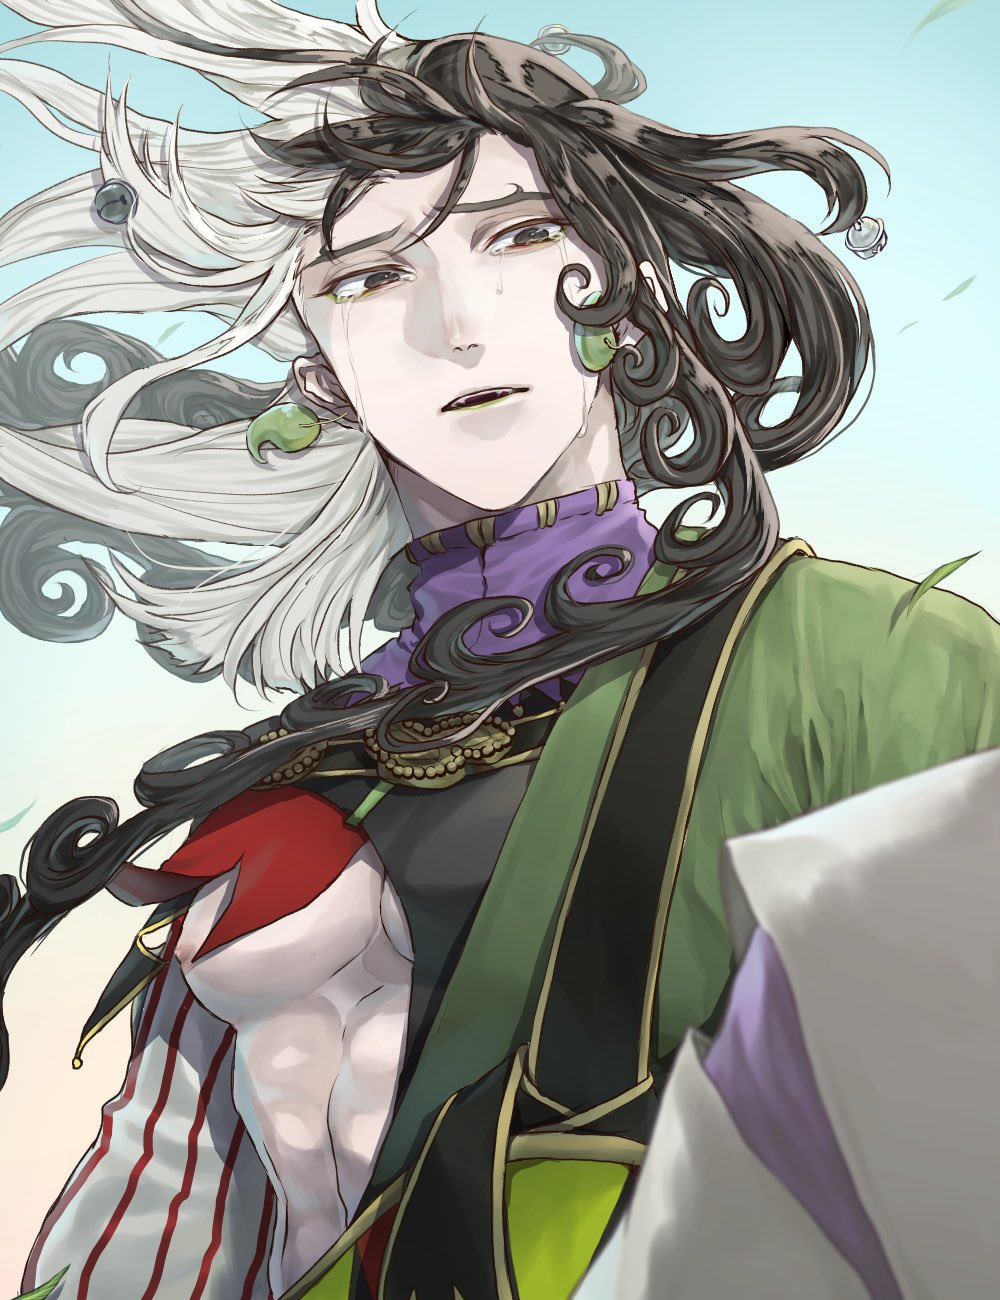 1boy akamarutm ashiya_douman_(fate) asymmetrical_clothes asymmetrical_hair bell black_eyes black_hair commentary_request crying crying_with_eyes_open curly_hair earrings eyeshadow fate/grand_order fate_(series) floating_hair green_eyeshadow green_kimono green_lips hadanugi_dousa hair_bell hair_ornament highres japanese_clothes jewelry jingle_bell kimono long_hair magatama magatama_earrings makeup male_focus mixed-language_commentary multicolored_hair nipples open_clothes open_kimono pale_skin pectorals solo striped tears two-tone_hair vertical_stripes white_hair